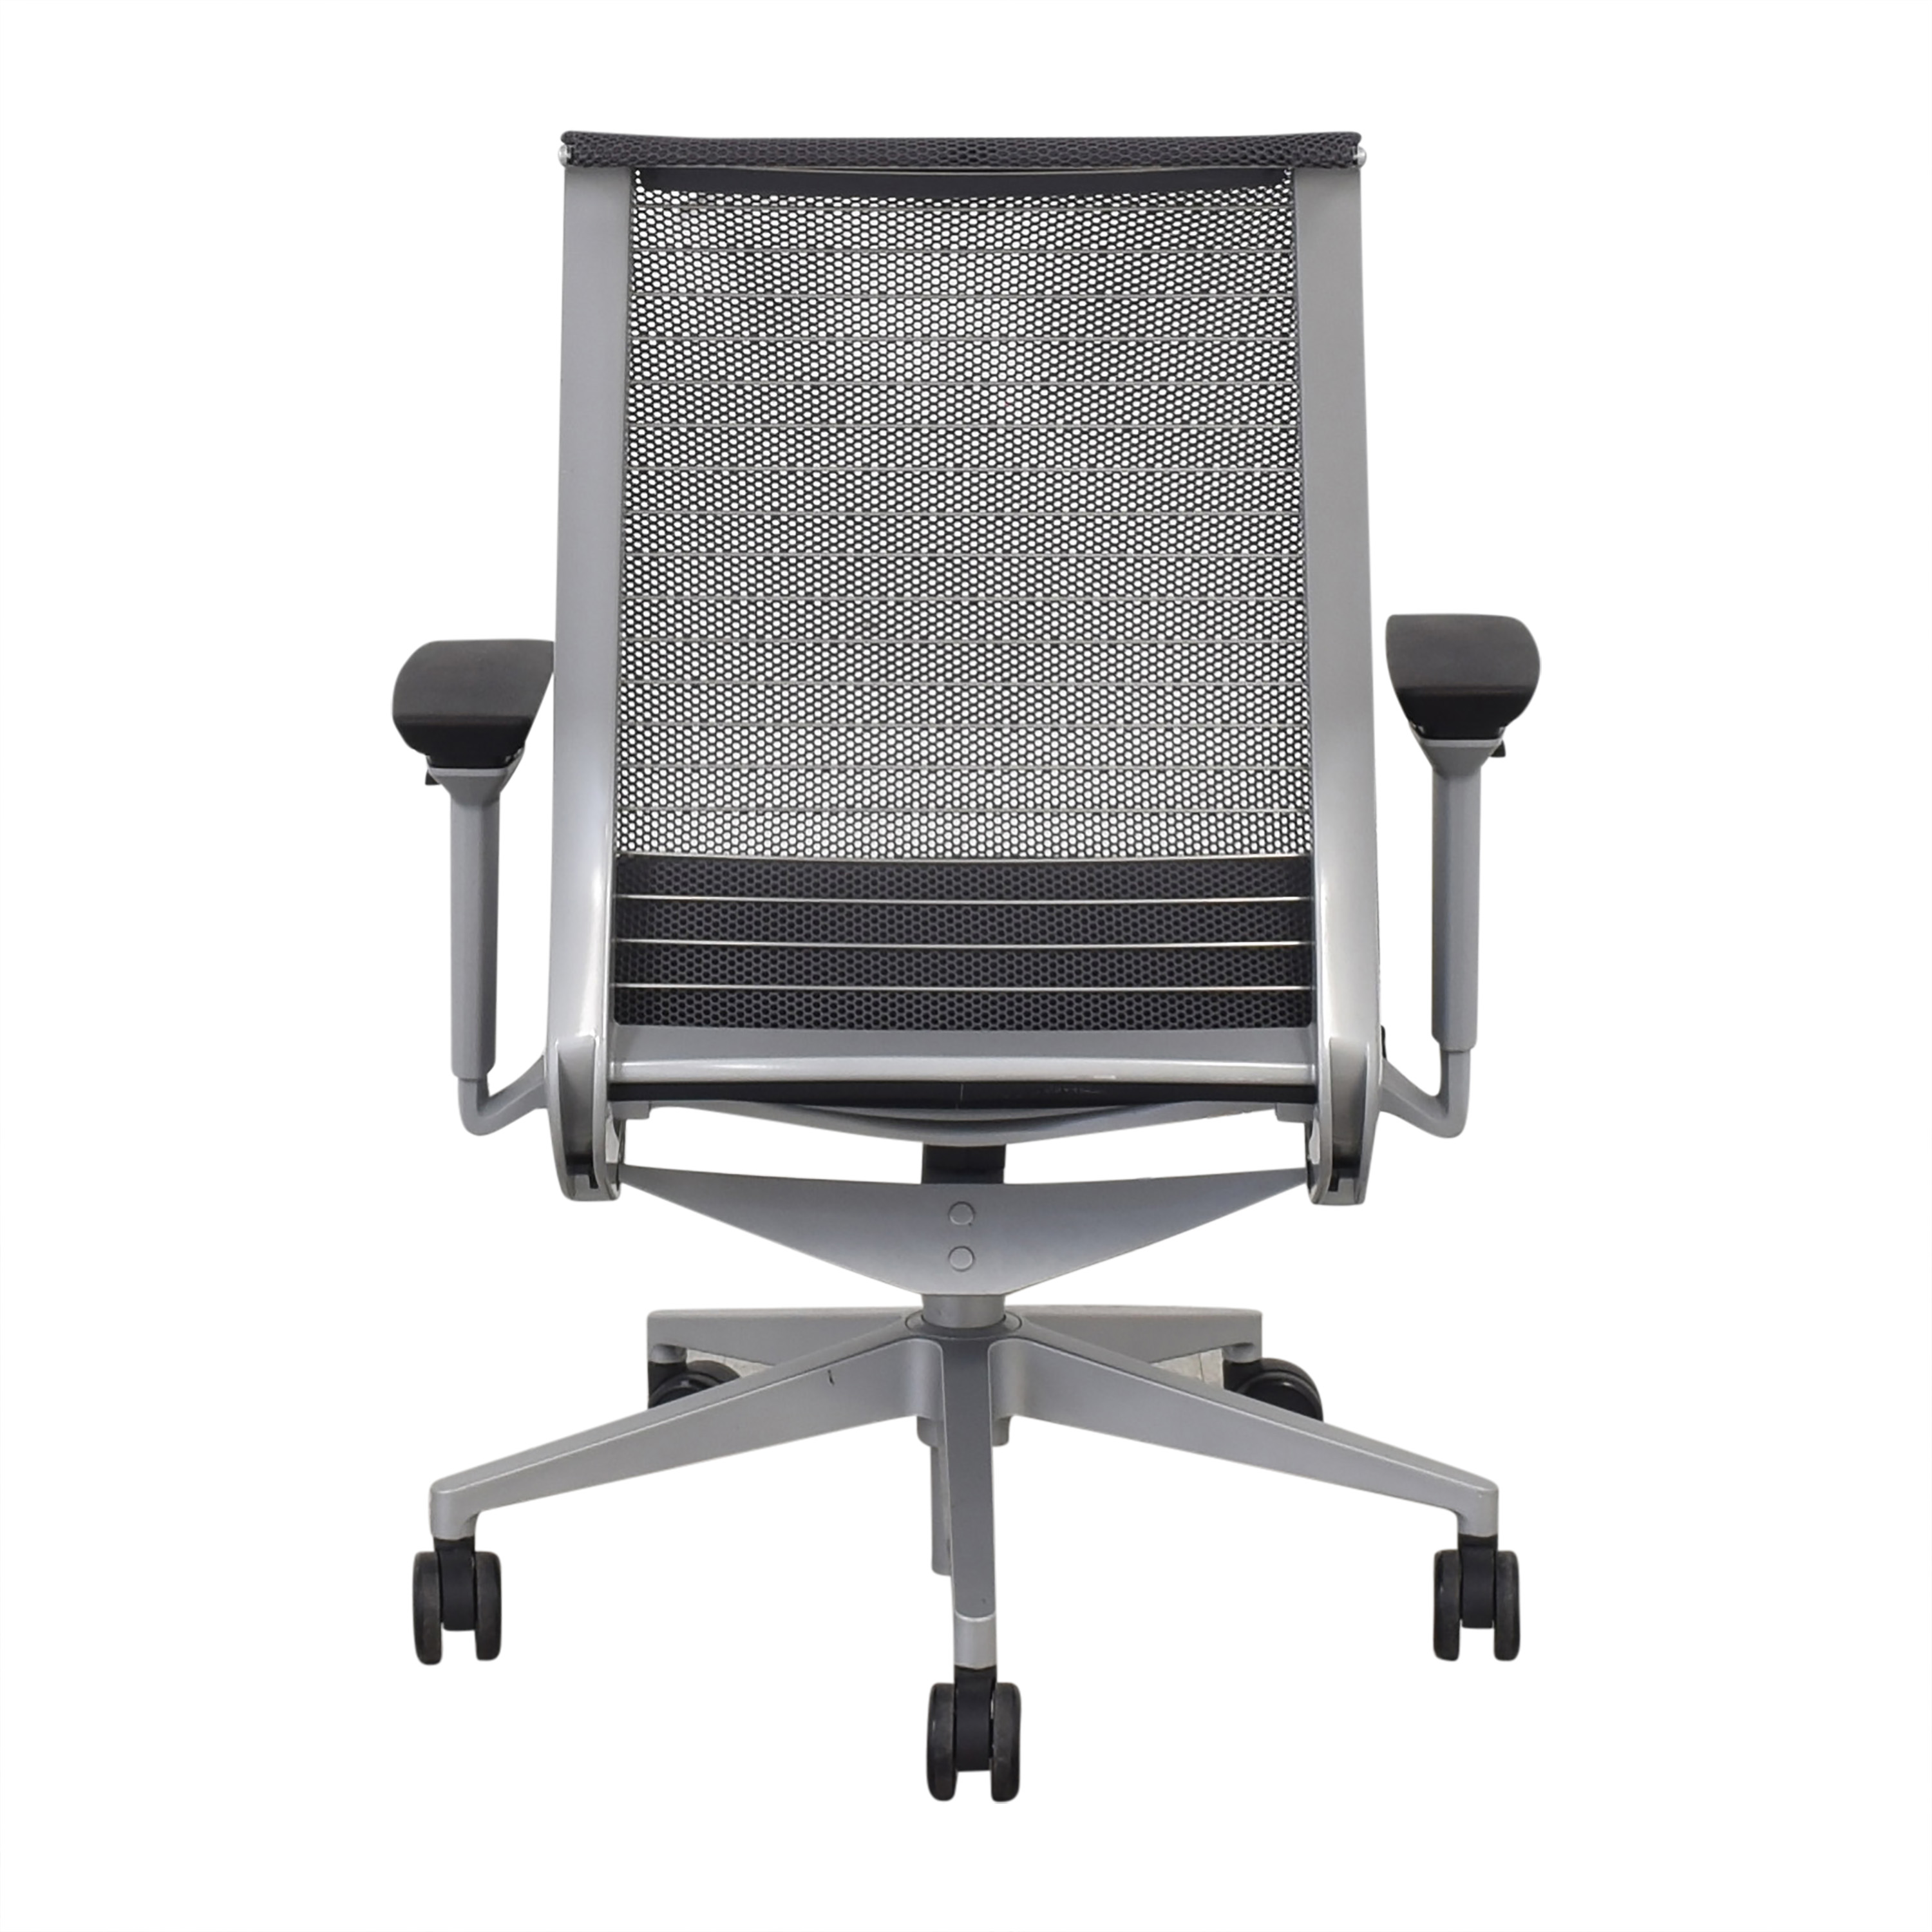 buy Steelcase Cobi Swivel Chair Steelcase Chairs